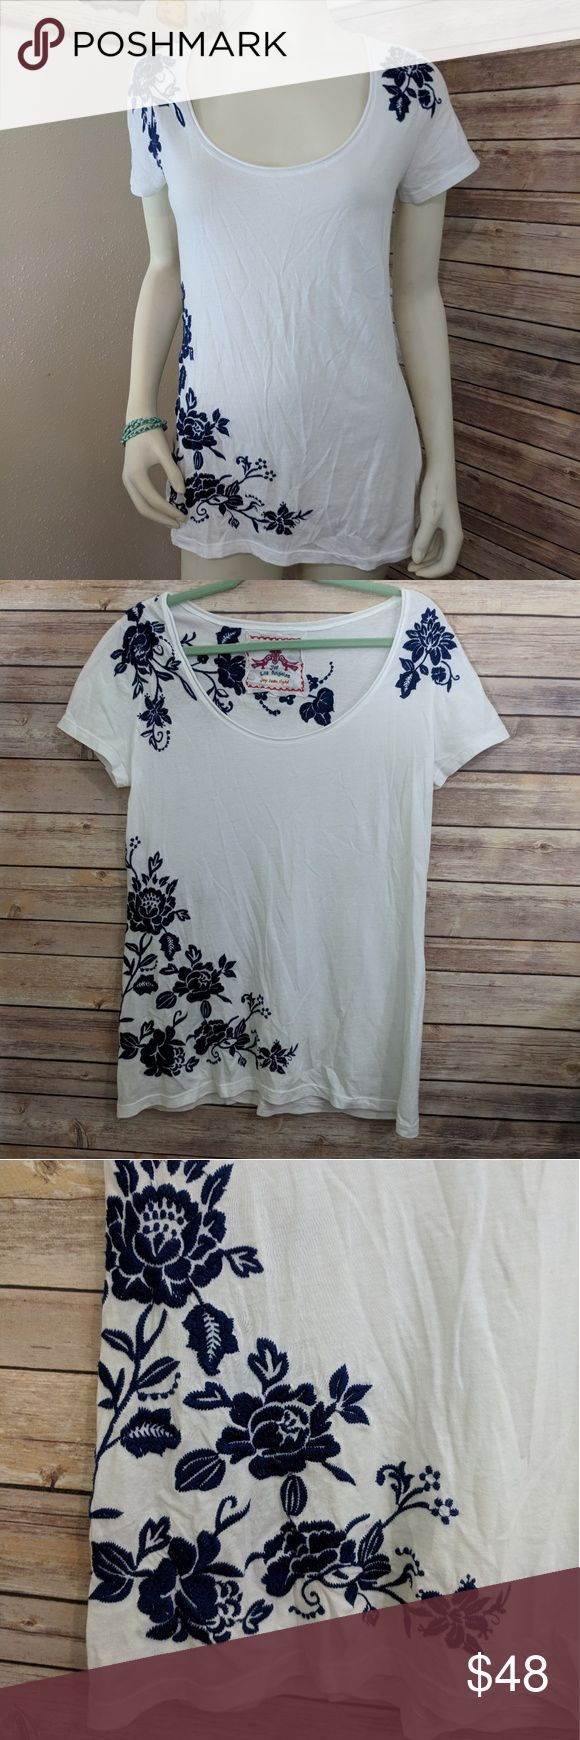 Johnny Was scoop neck dark blue embroidered tee Shirt features dark blue embroidered flowers decorating the sleeves, back of neck, and the bottom of one side against a white cotton tee.  Shirt is somewhat long design. Gently worn with no real sign of wear. Johnny Was Tops Tees - Short Sleeve